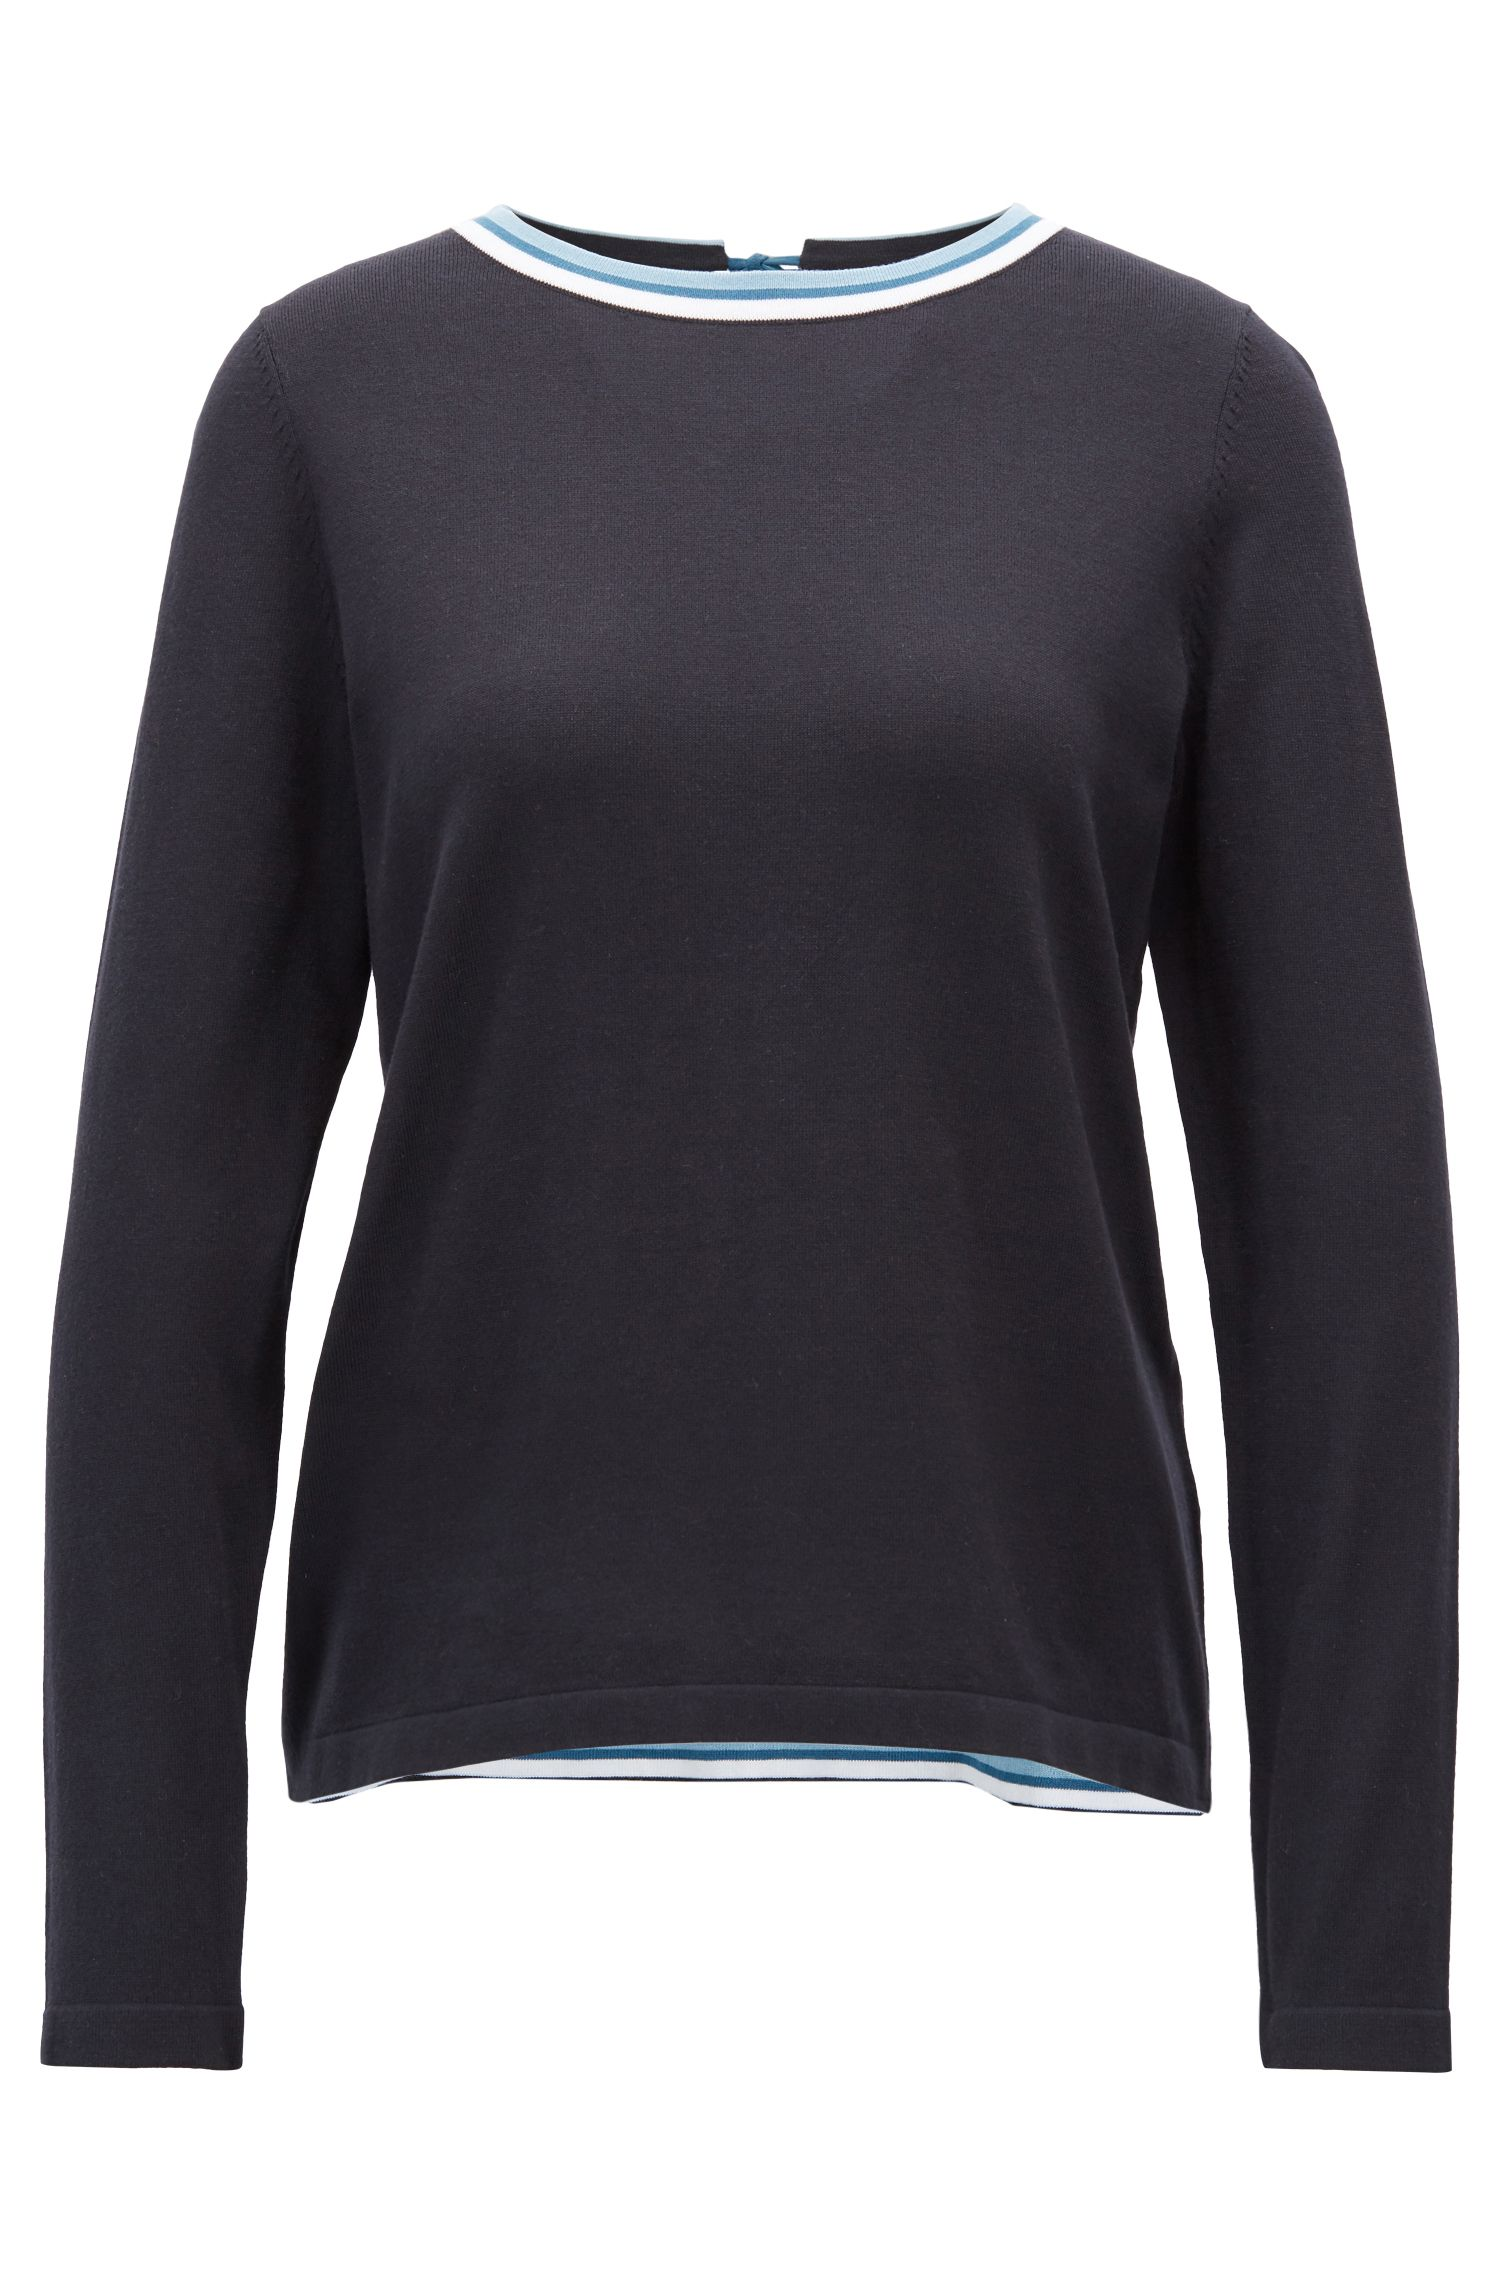 Cotton-blend sweater with striped crew neck